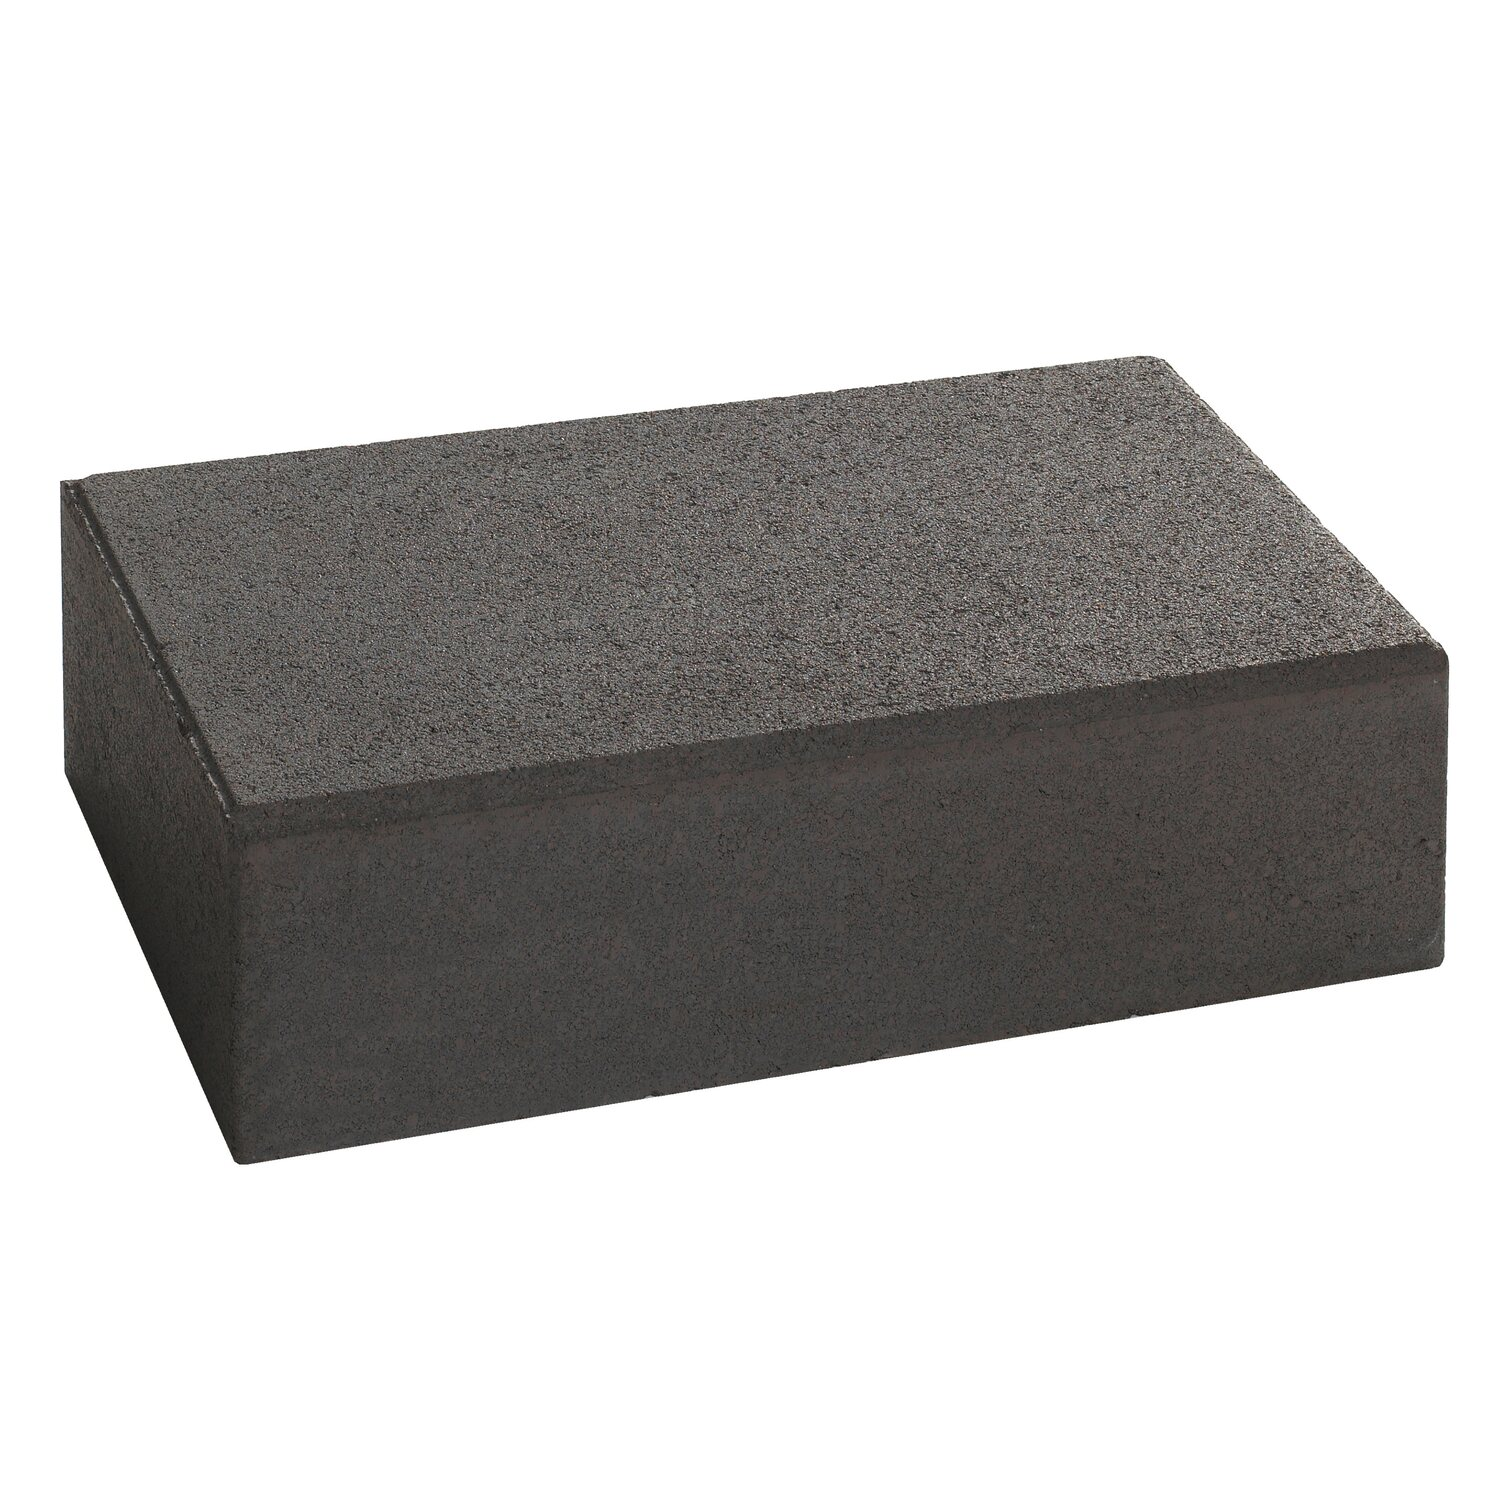 kann blockstufe aus beton anthrazit 50 cm x 34 cm x 15 cm kaufen bei obi. Black Bedroom Furniture Sets. Home Design Ideas